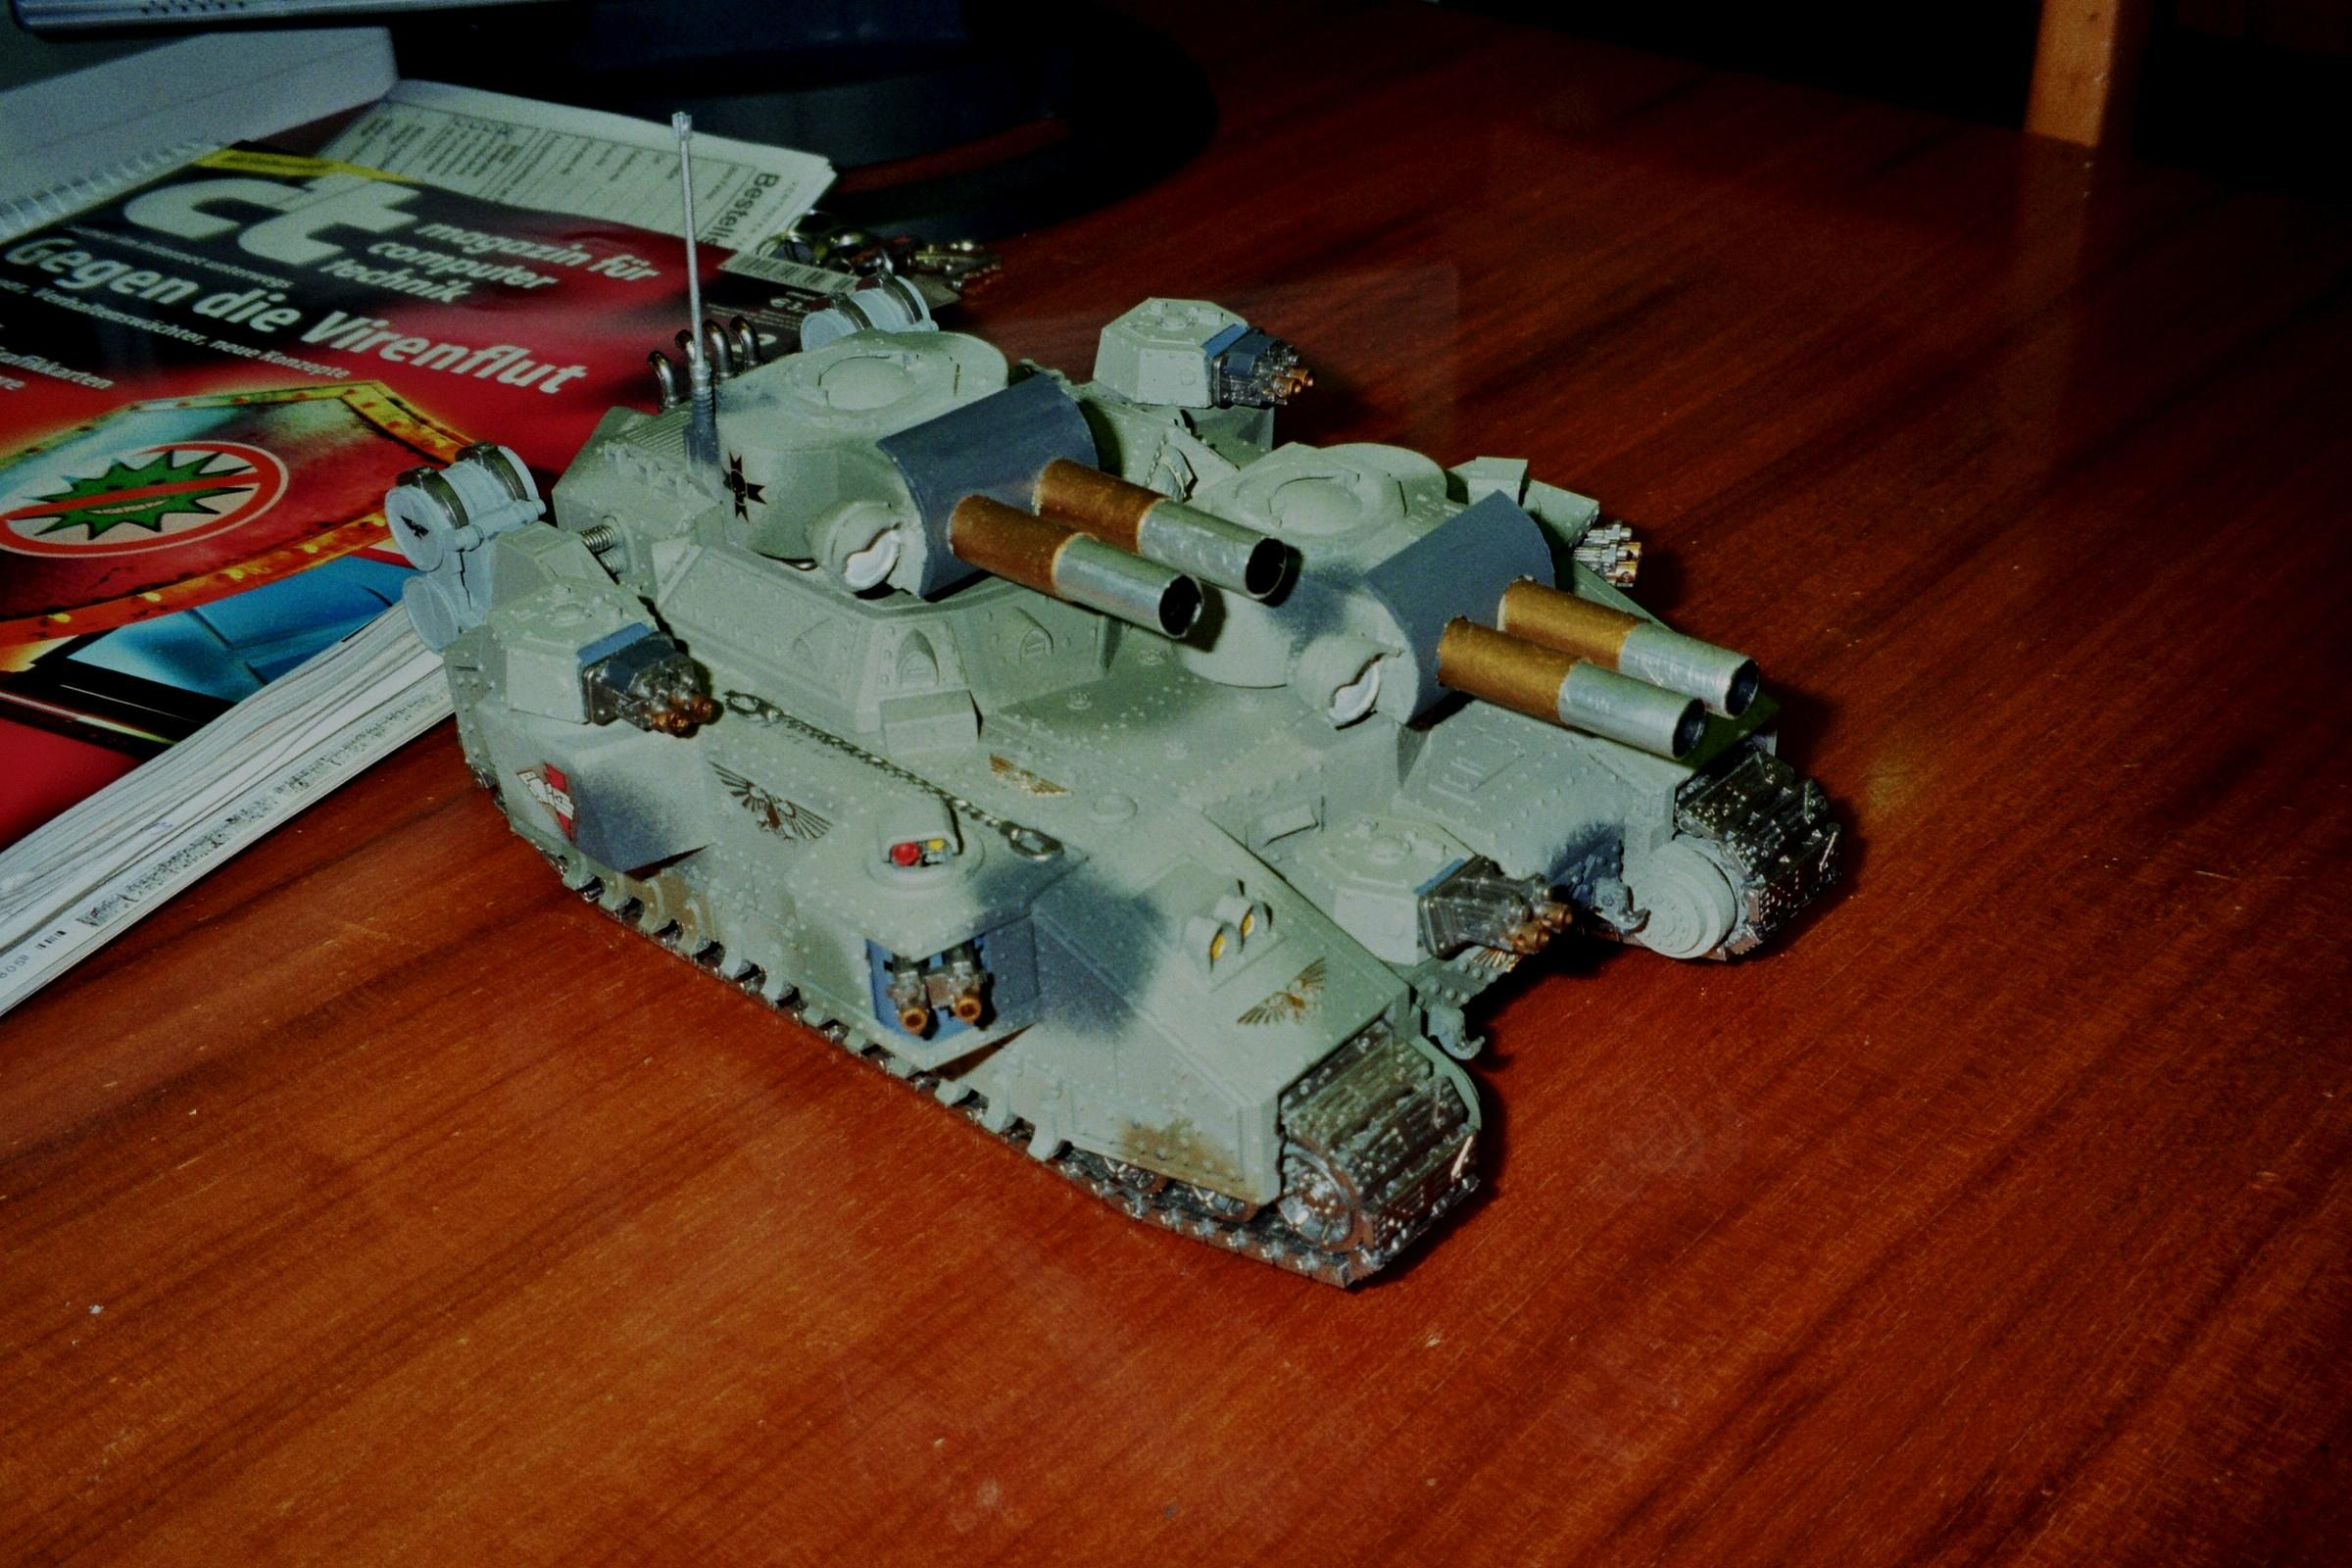 Baneblade, Conversion, Imperial Guard, Superheavy Tank